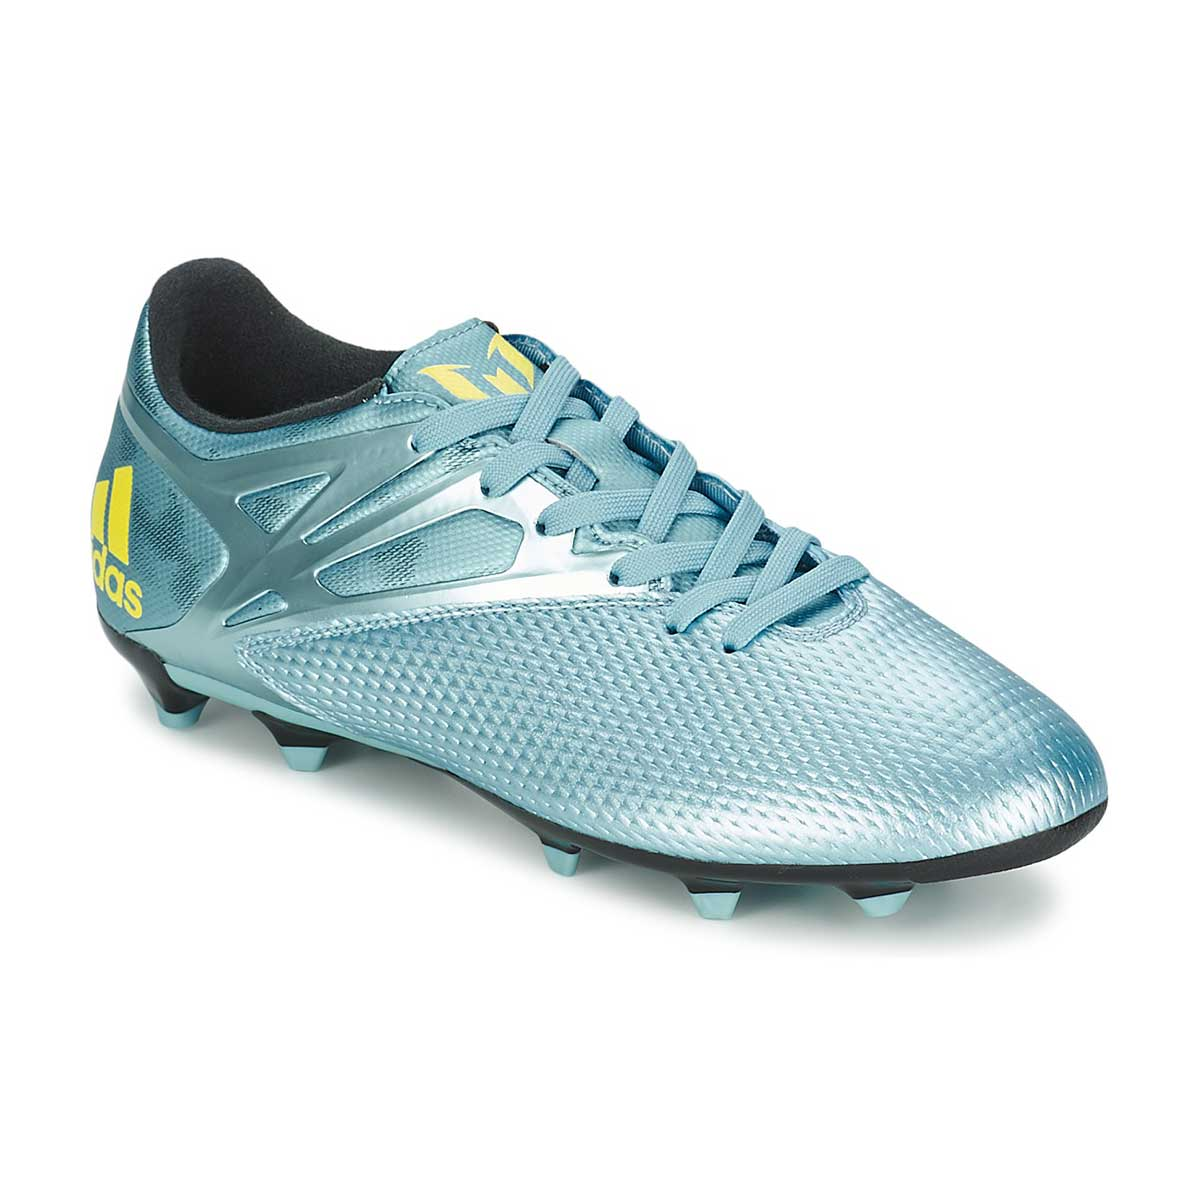 e370d9217 Buy Adidas Messi 15.3 FG AG Football Shoes Online in India